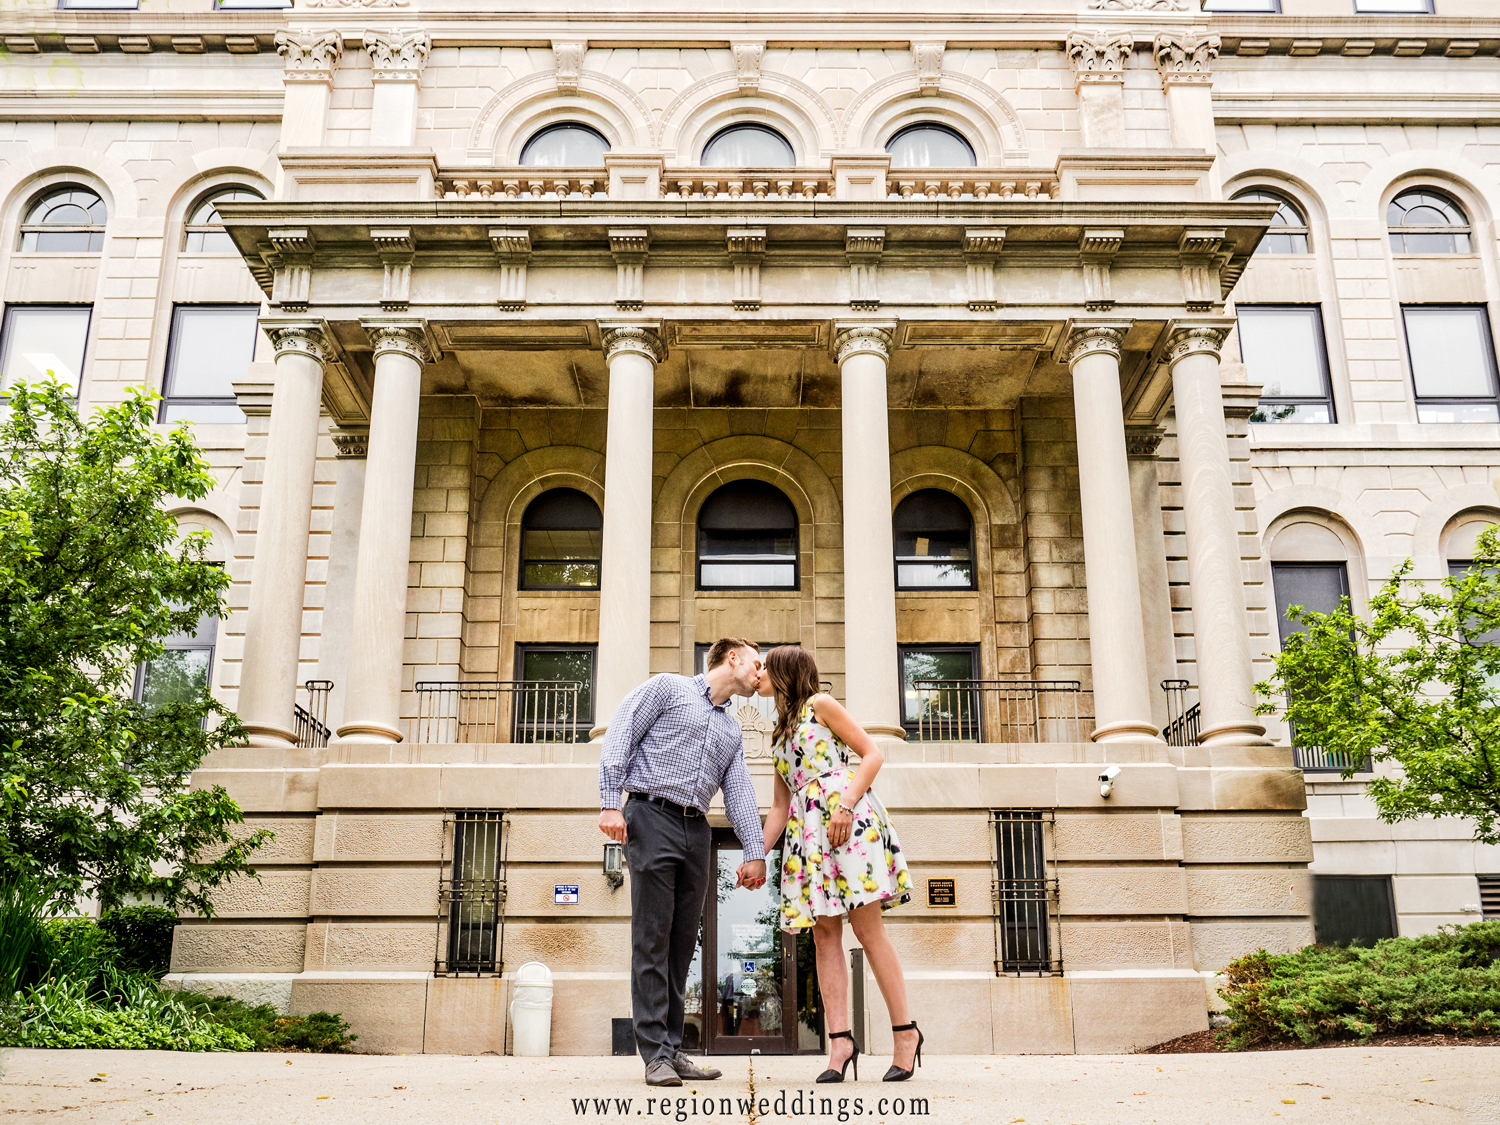 A couple kisses in front of the Porter County Courthouse for their engagement photo.